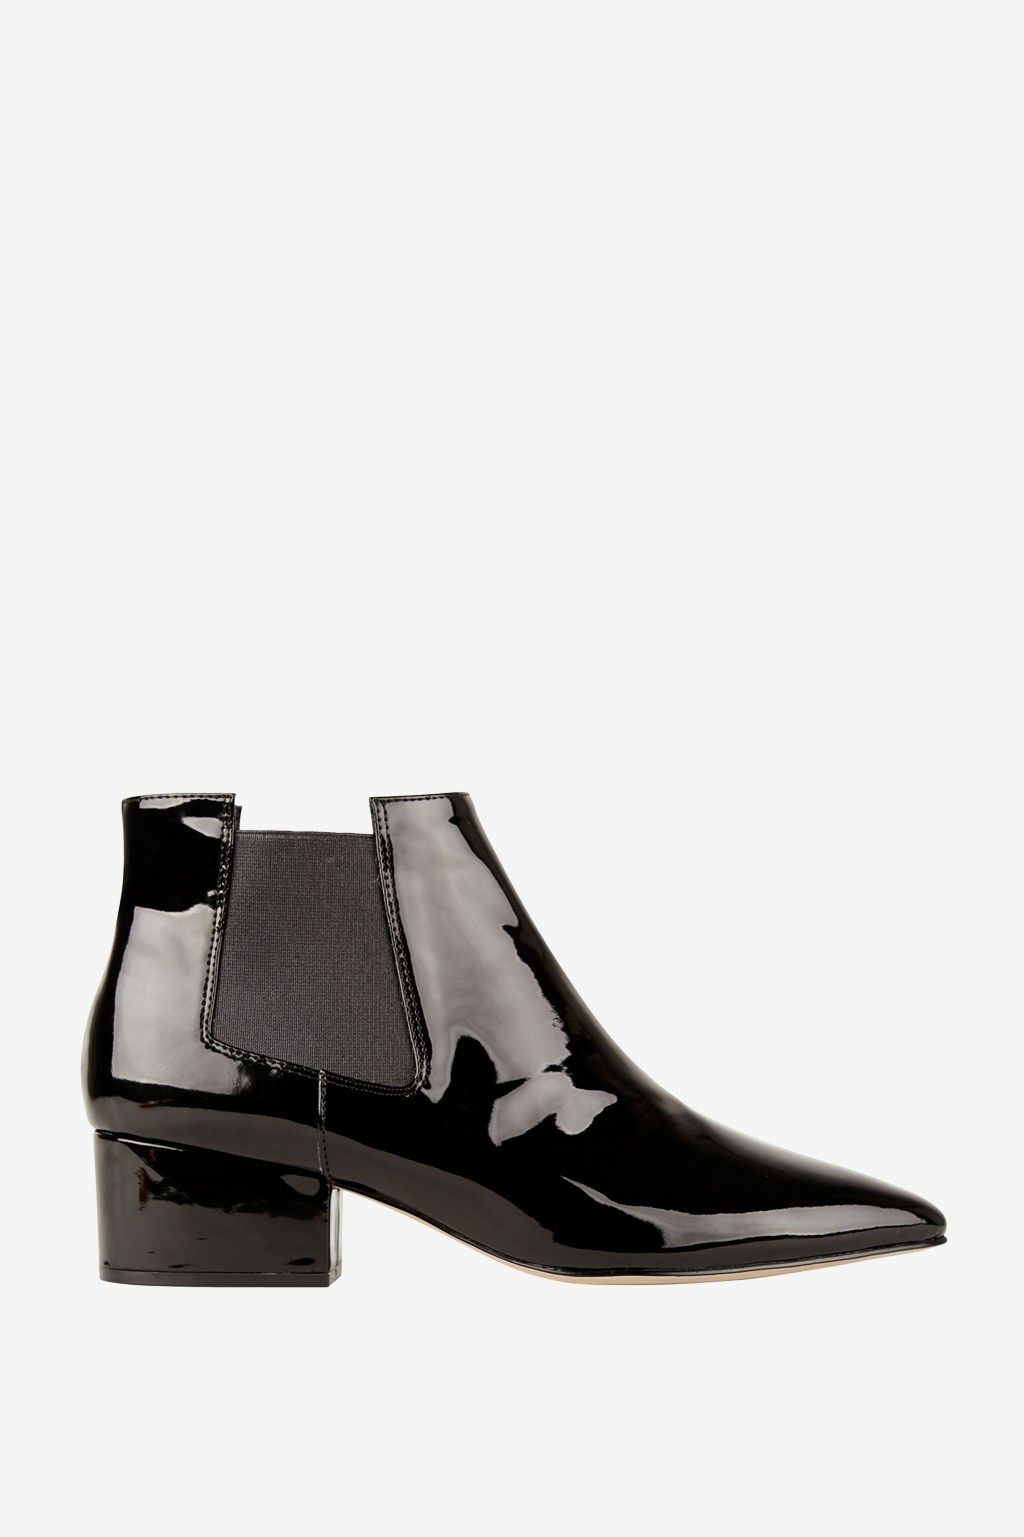 7f624d4e4a5 Ronan Shoe Boots - As Seen In Press - French Connection Usa   Shoes ...